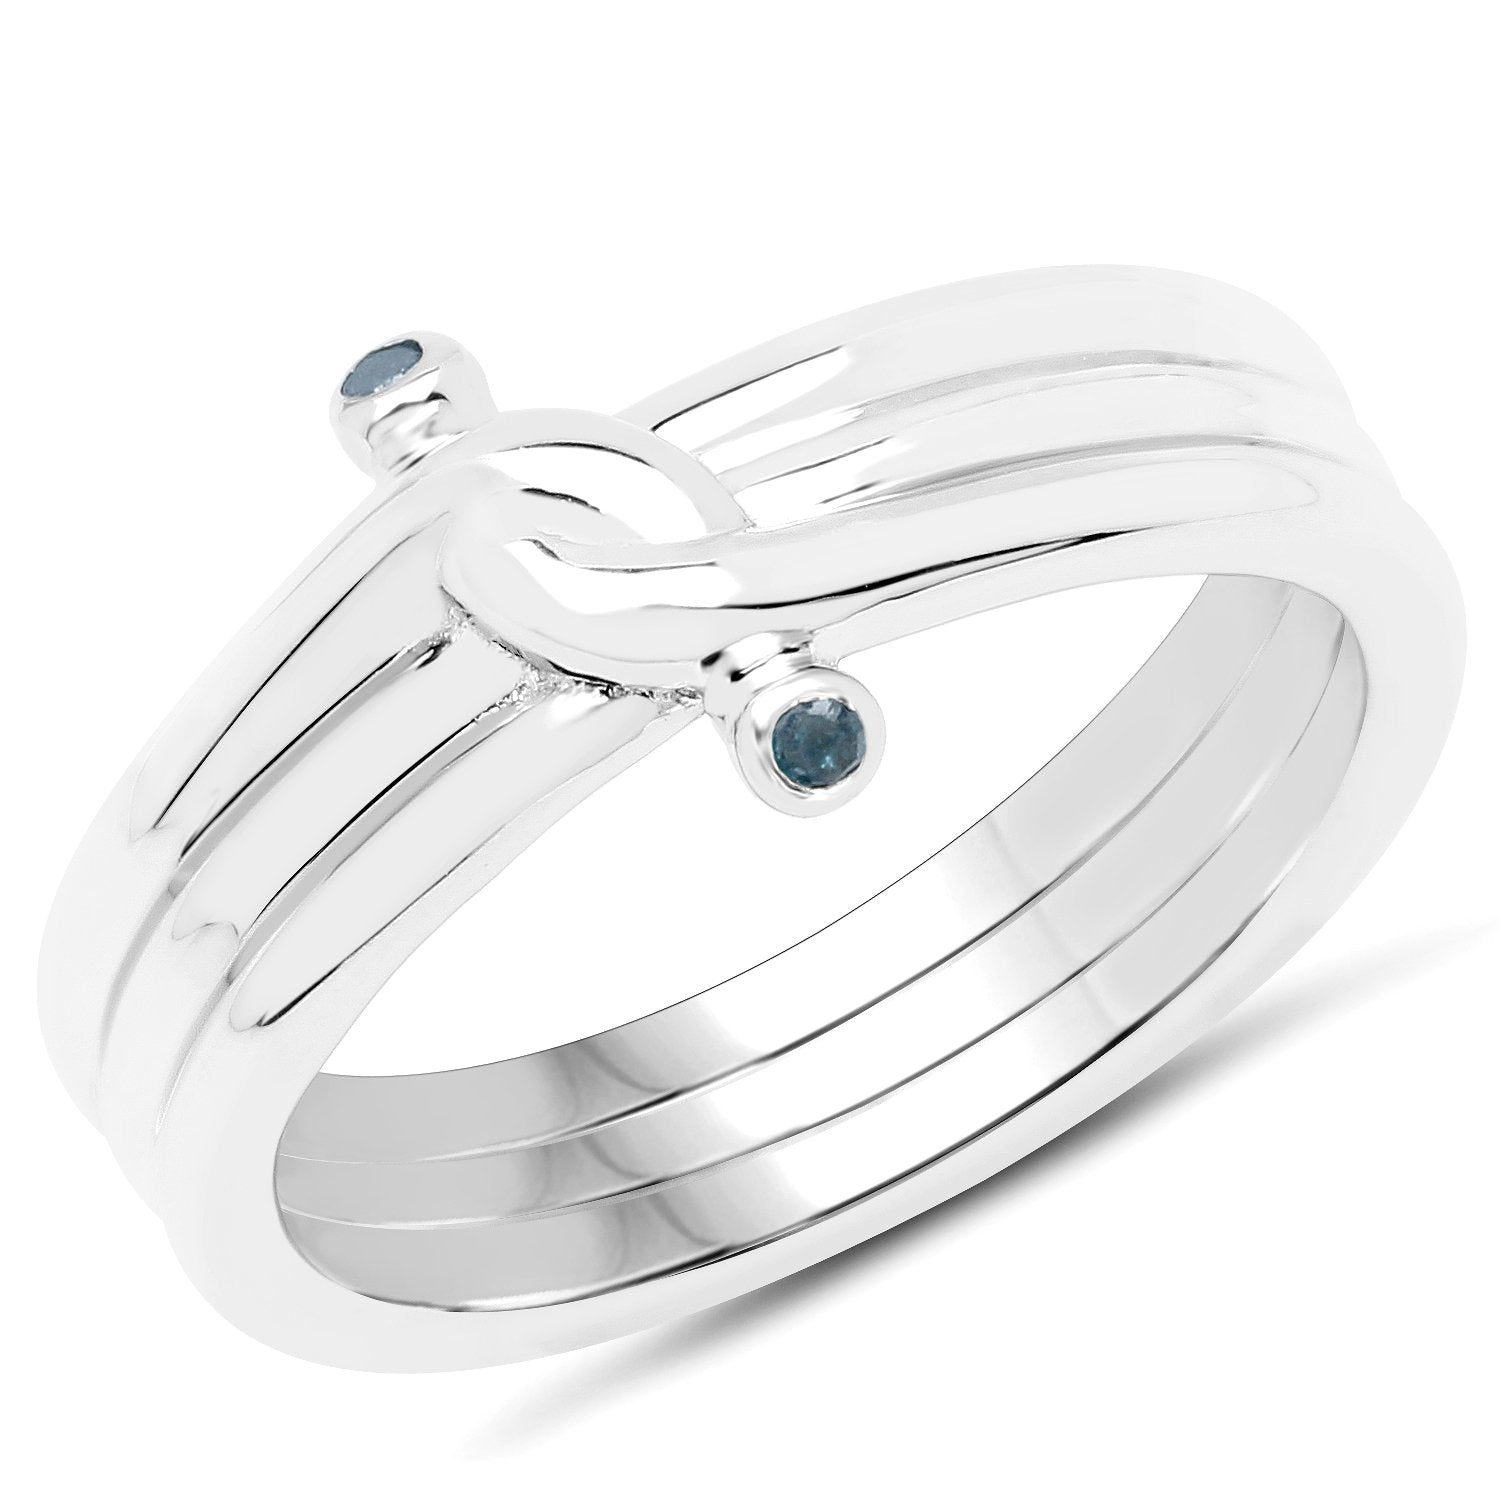 LoveHuang 0.01 Carats Genuine Blue Diamond (I-J, I2-I3) Knot Ring Solid .925 Sterling Silver With Rhodium Plating